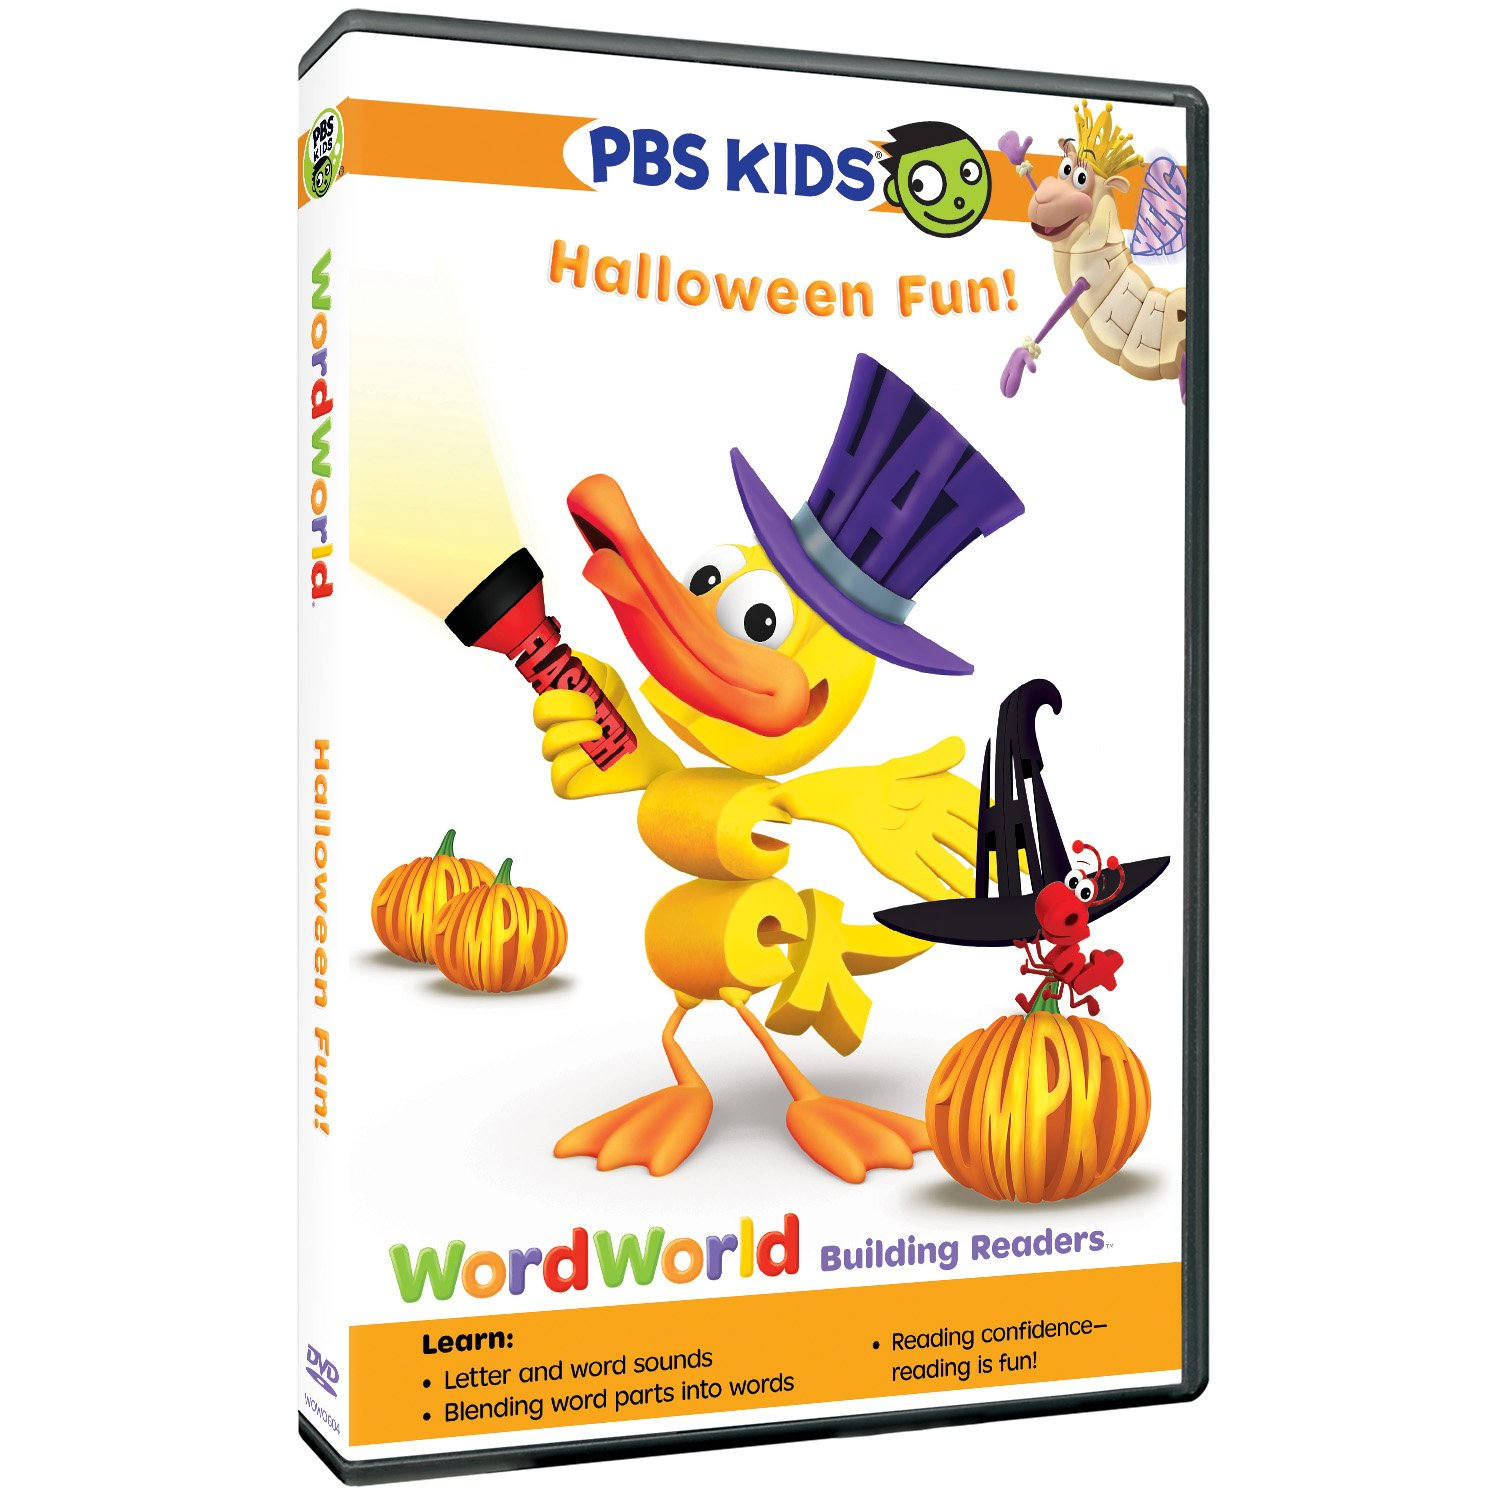 in the frightfully fun dvd wordworld halloween fun join the wordfriends on adventures that demonstrate the connections between letters sounds words